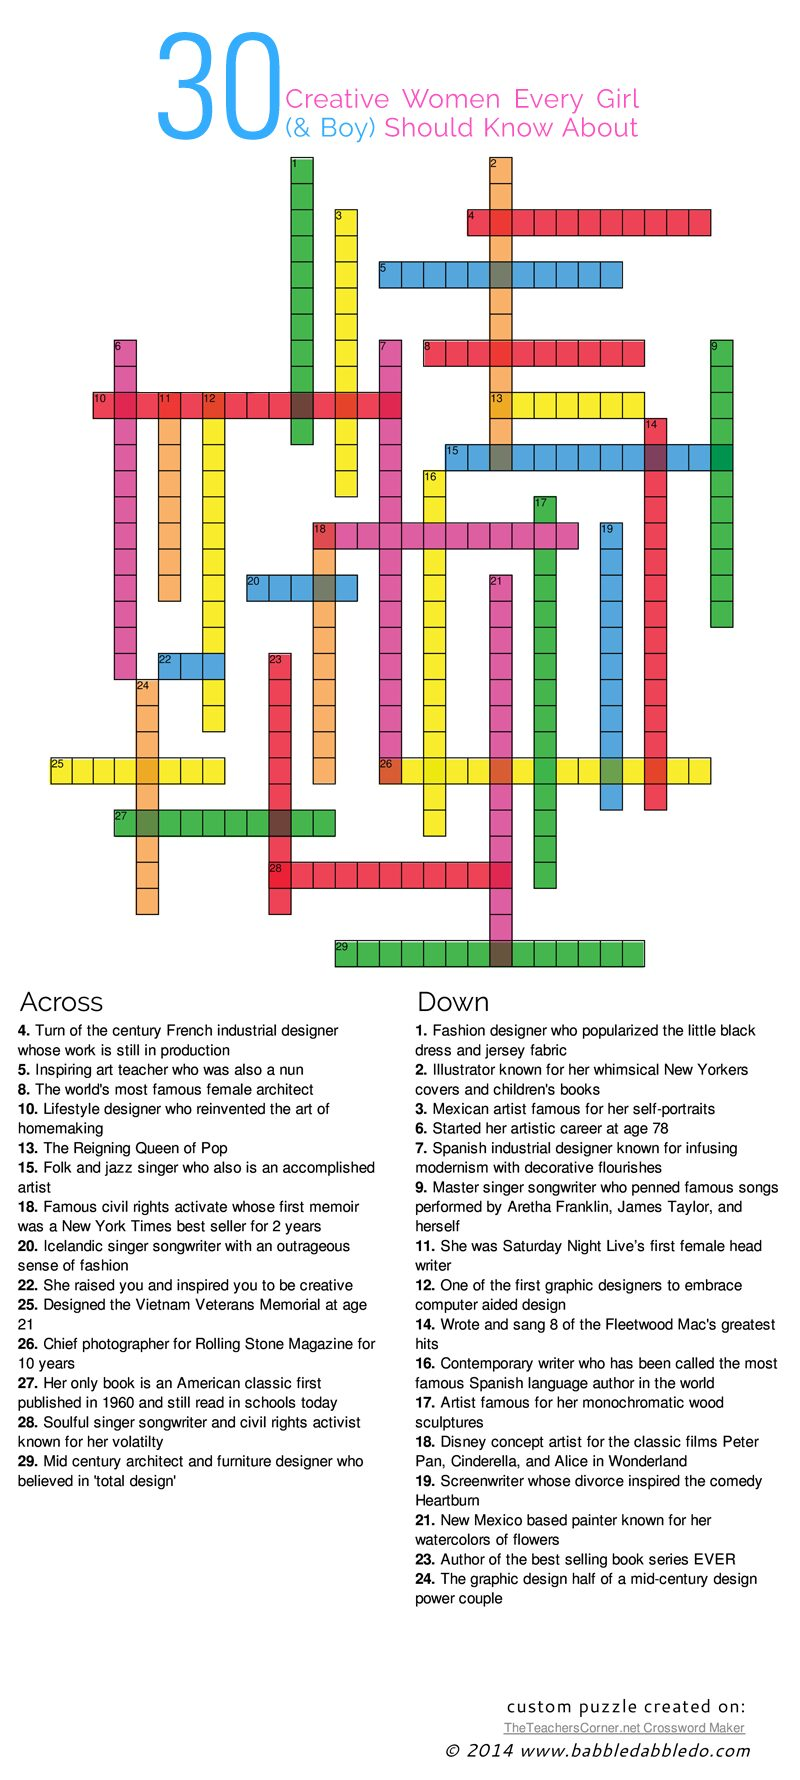 30 Creative Women Every Girl (& Boy) Should Know About- Plus a FREE downloadable word search and crossword puzzle